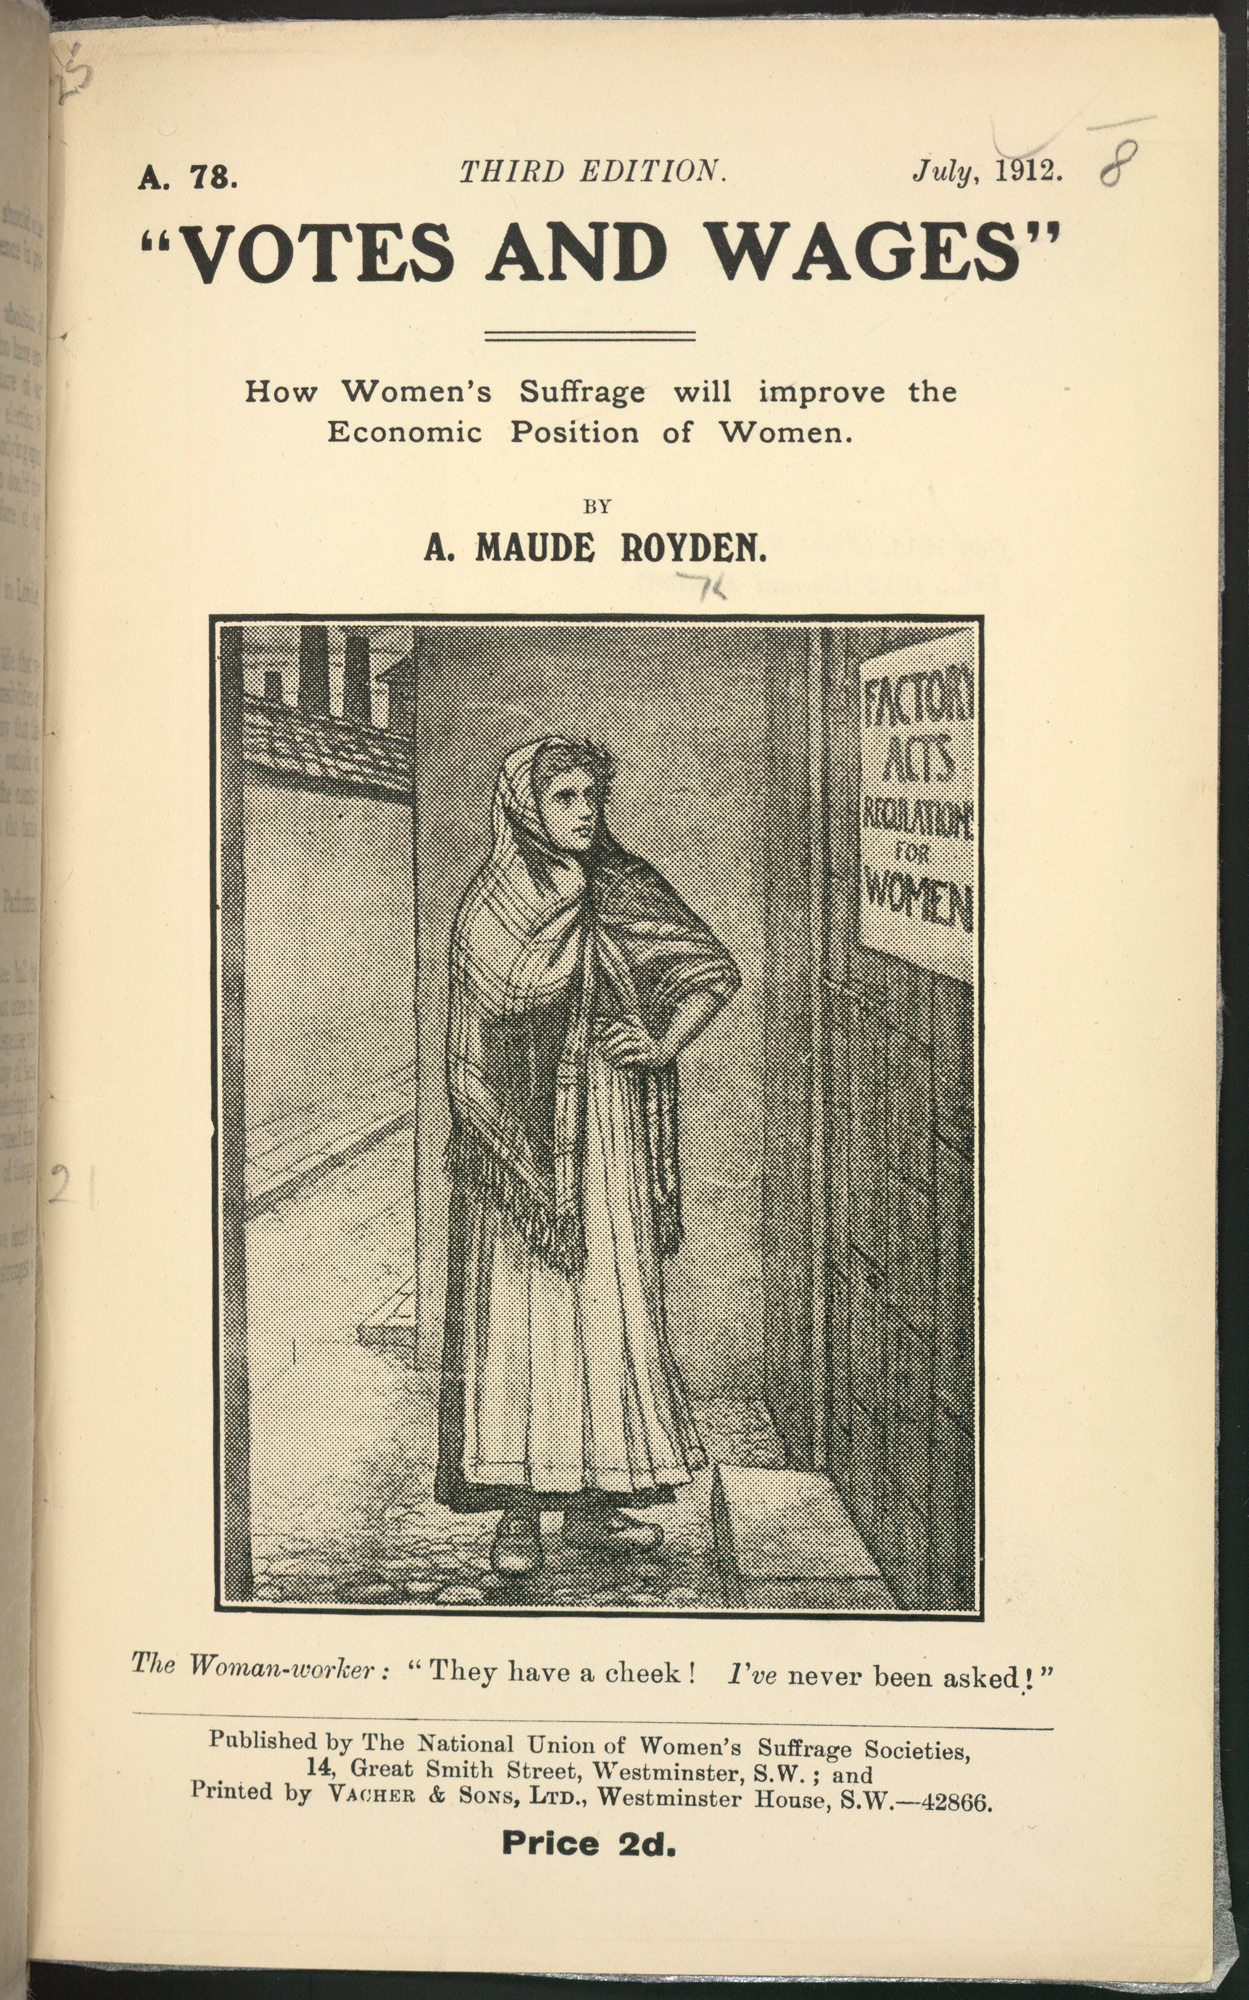 Votes and wages pamphlet by Agnes Maude Royden. The large illustration in the middle of the page depicts a working class woman in a shawl